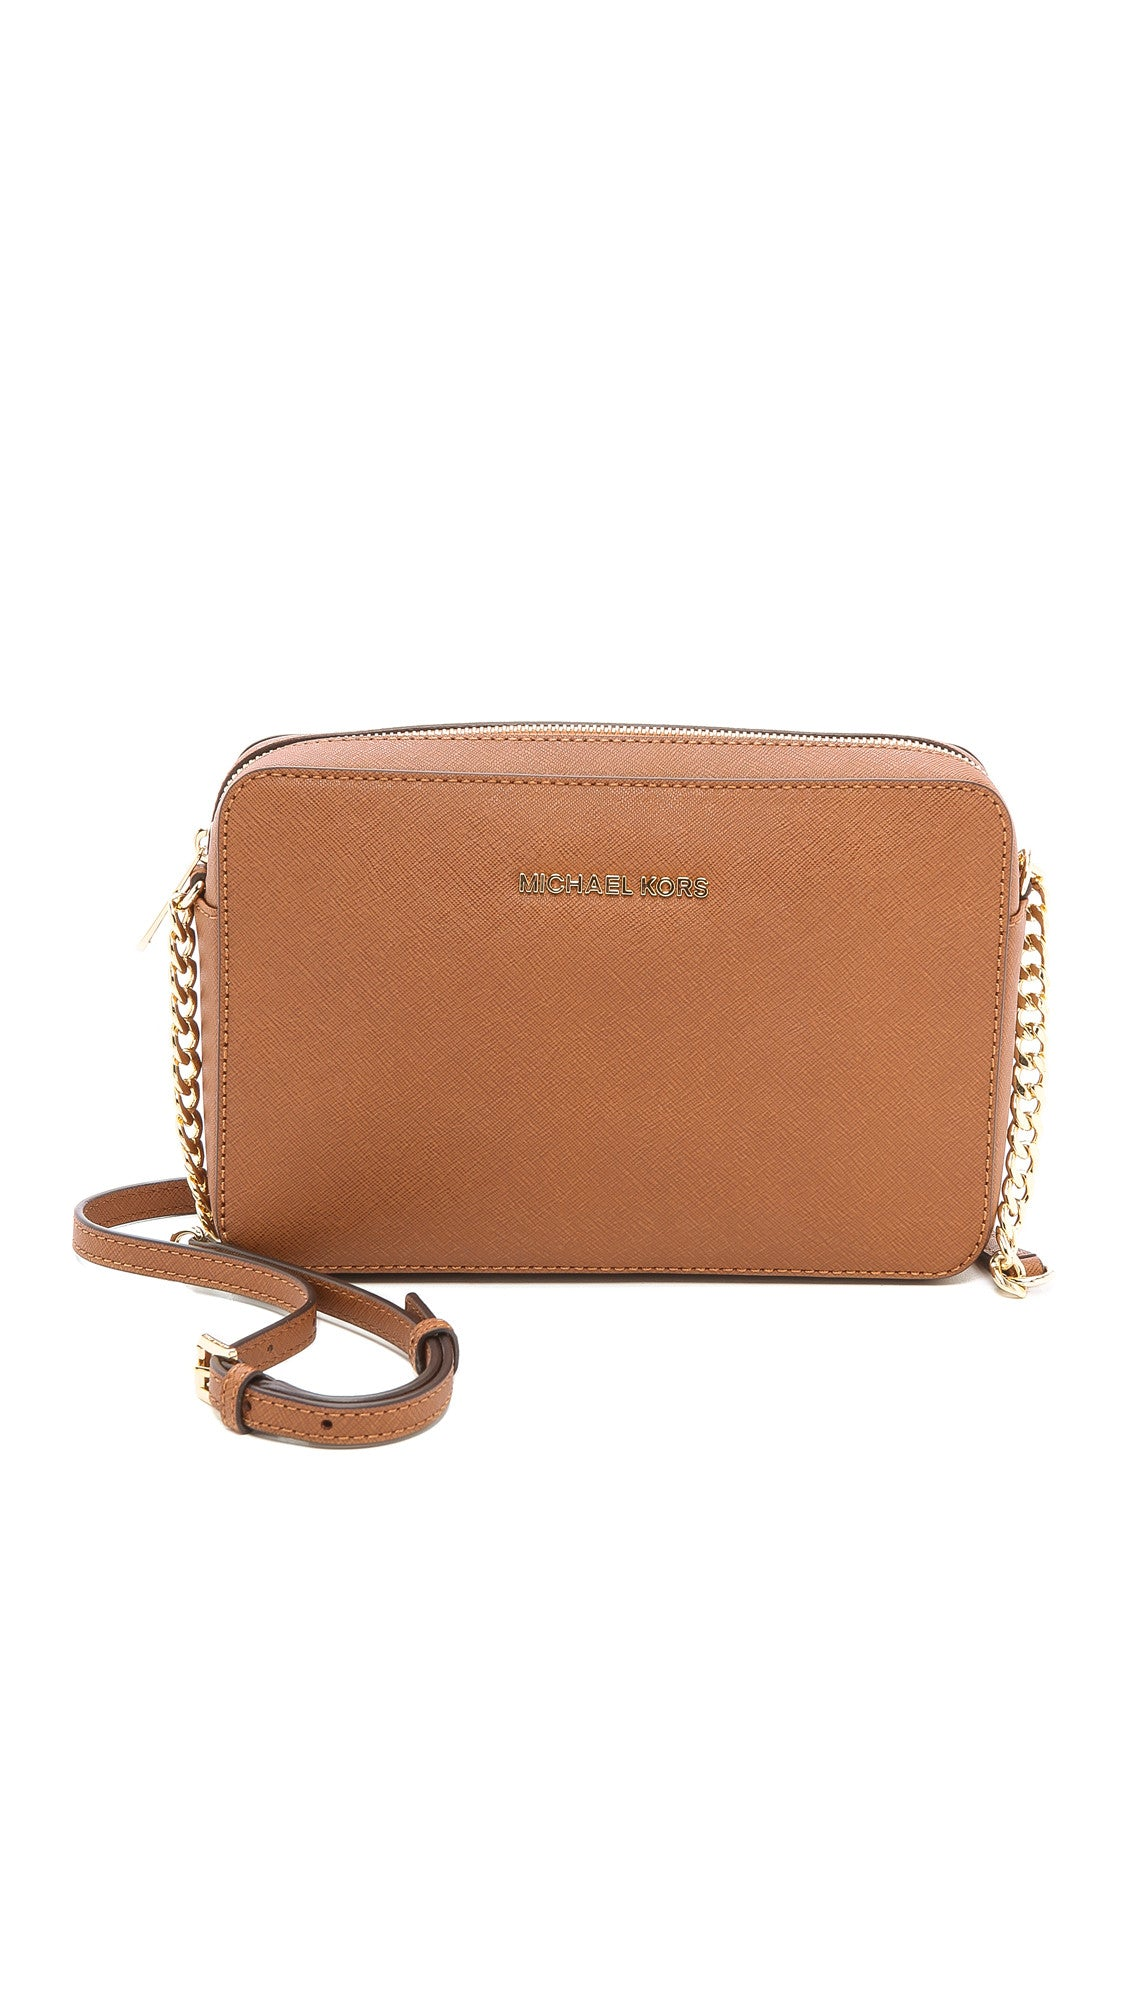 3abe923c0eb5 michael-michael-kors--jet-set-cross-body-bag -luggage-product-1-26001378-2-893694120-normal.jpeg?v=1510177134